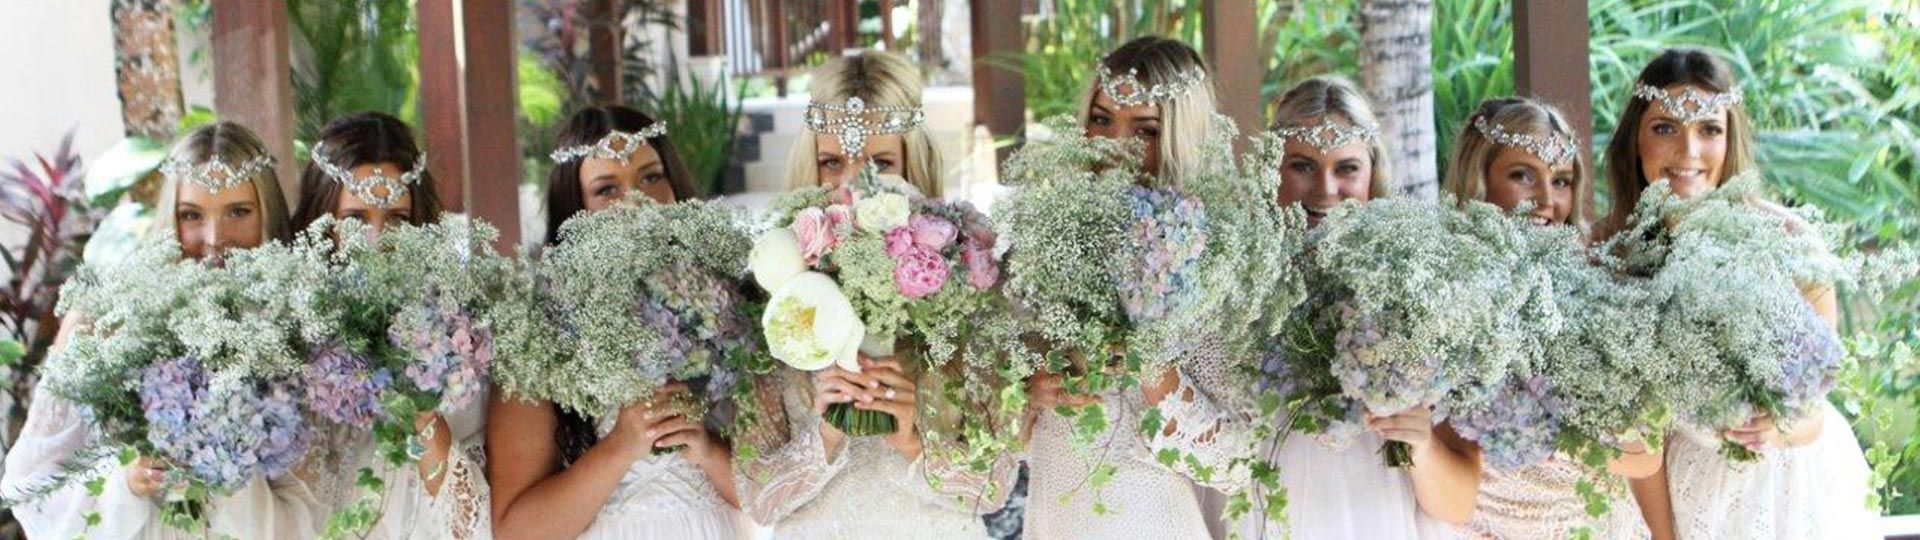 Weddings Without Waste: Creating an Eco-Conscious Bali Wedding with Tirtha Bridal